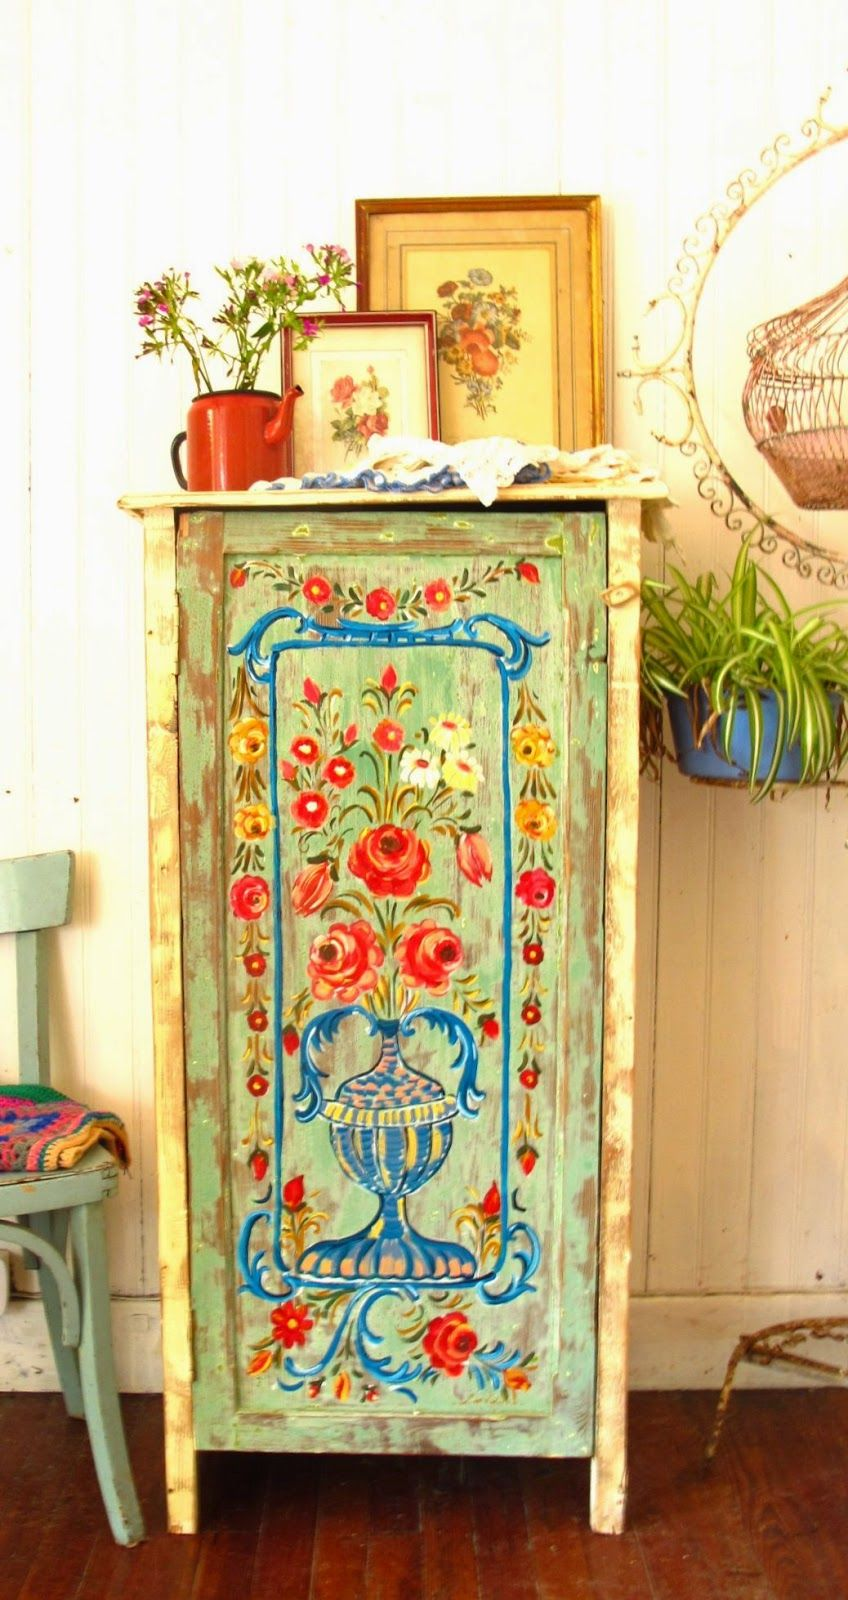 Las vidalas handpainted furniture from flasvidalas for Muebles estilo indio